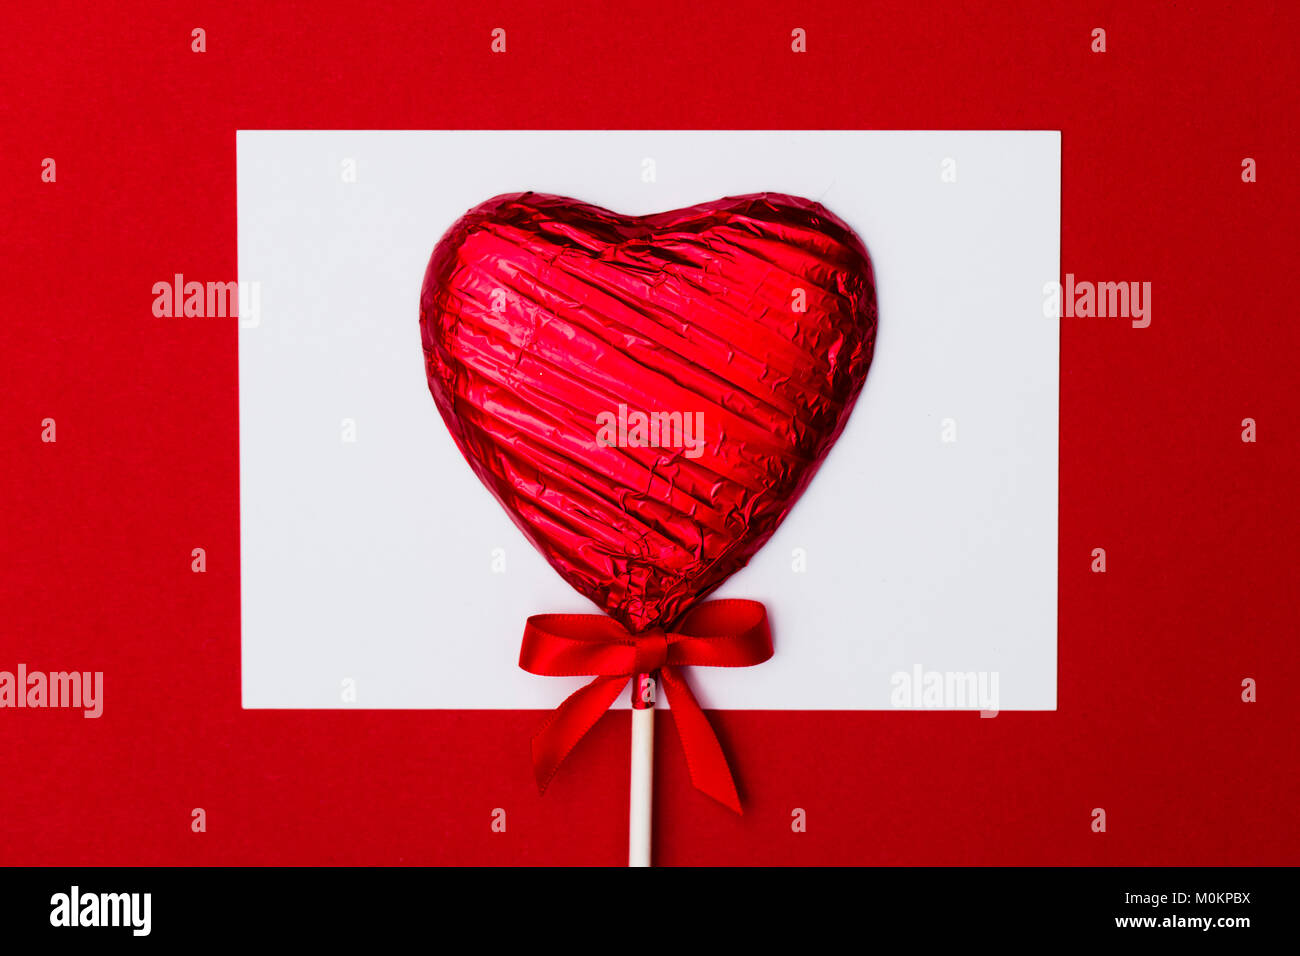 Heart Shaped Candy Lolly Valentine S Day Gift With A Blank